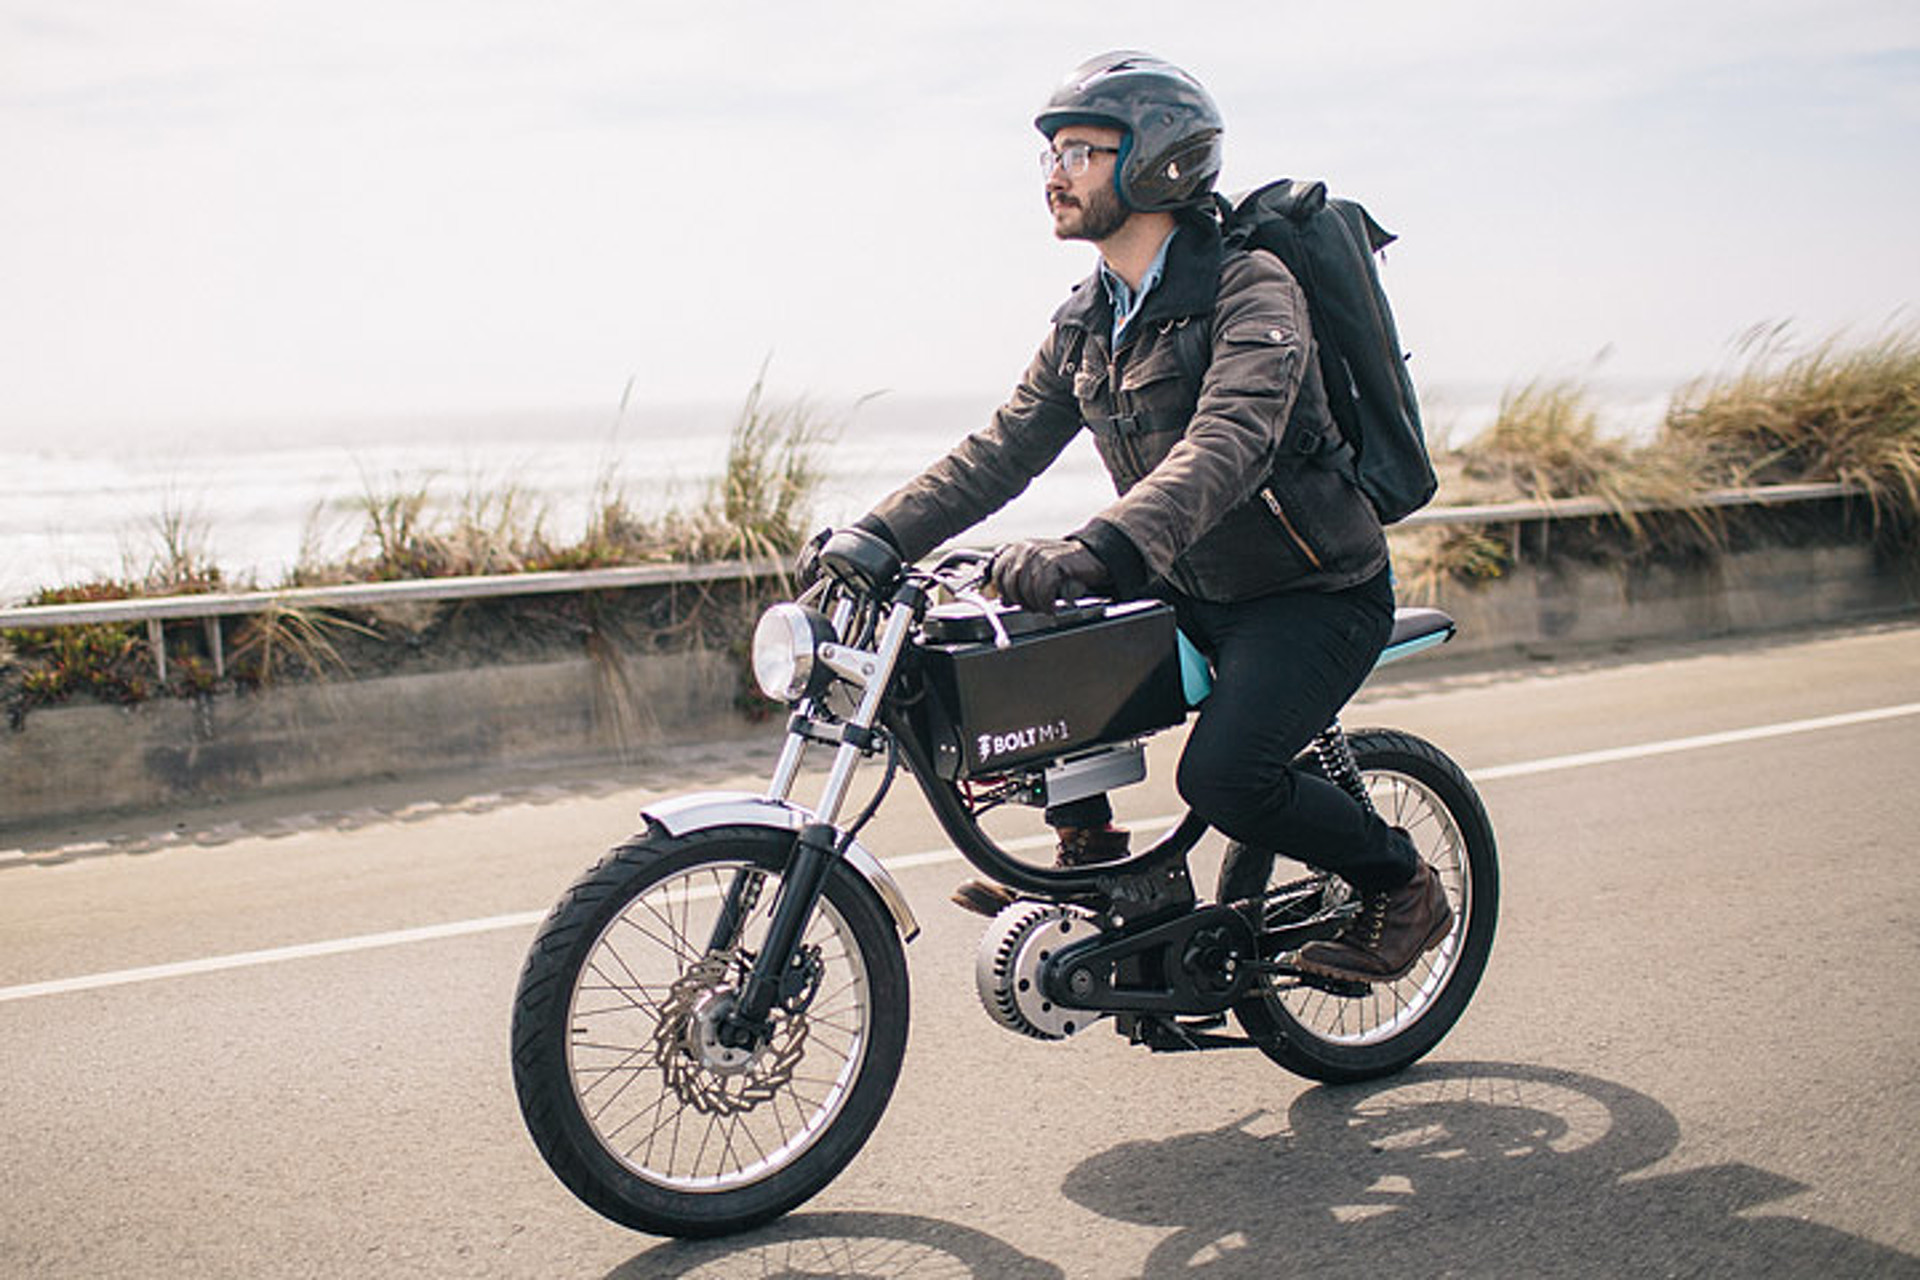 The Bolt M 1 Blends Motorcycle And E Bike In One Cool Package